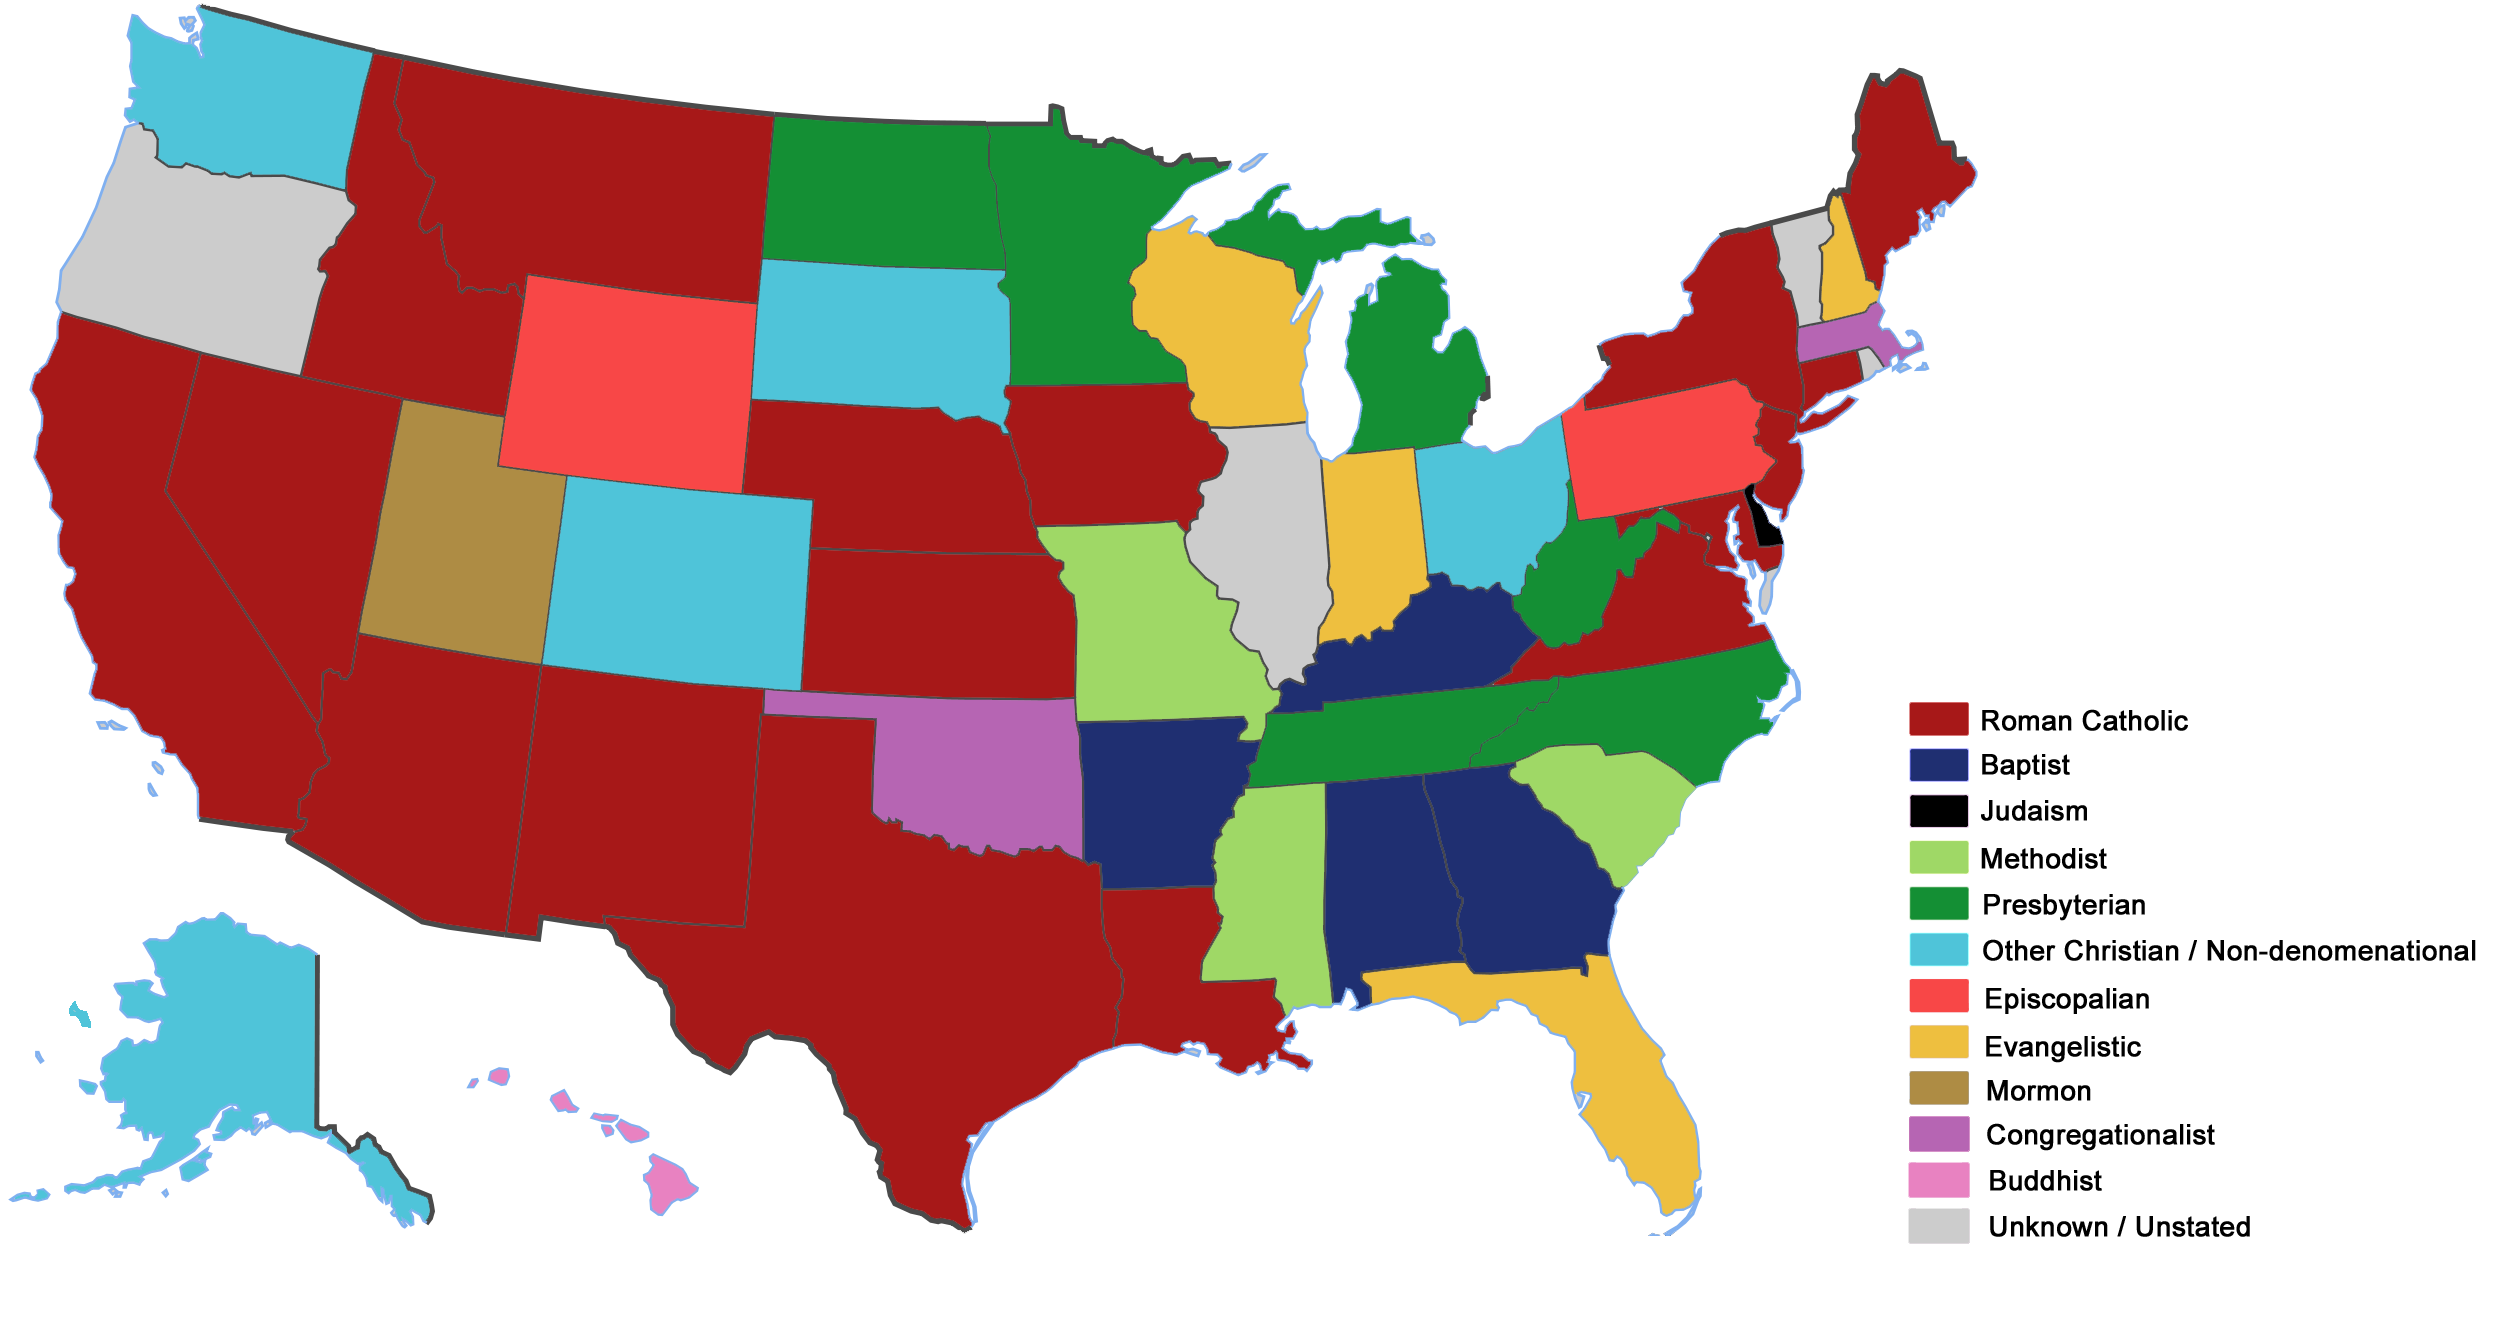 FileMap Of Governors In The United States By Religionpng - Usa religion map